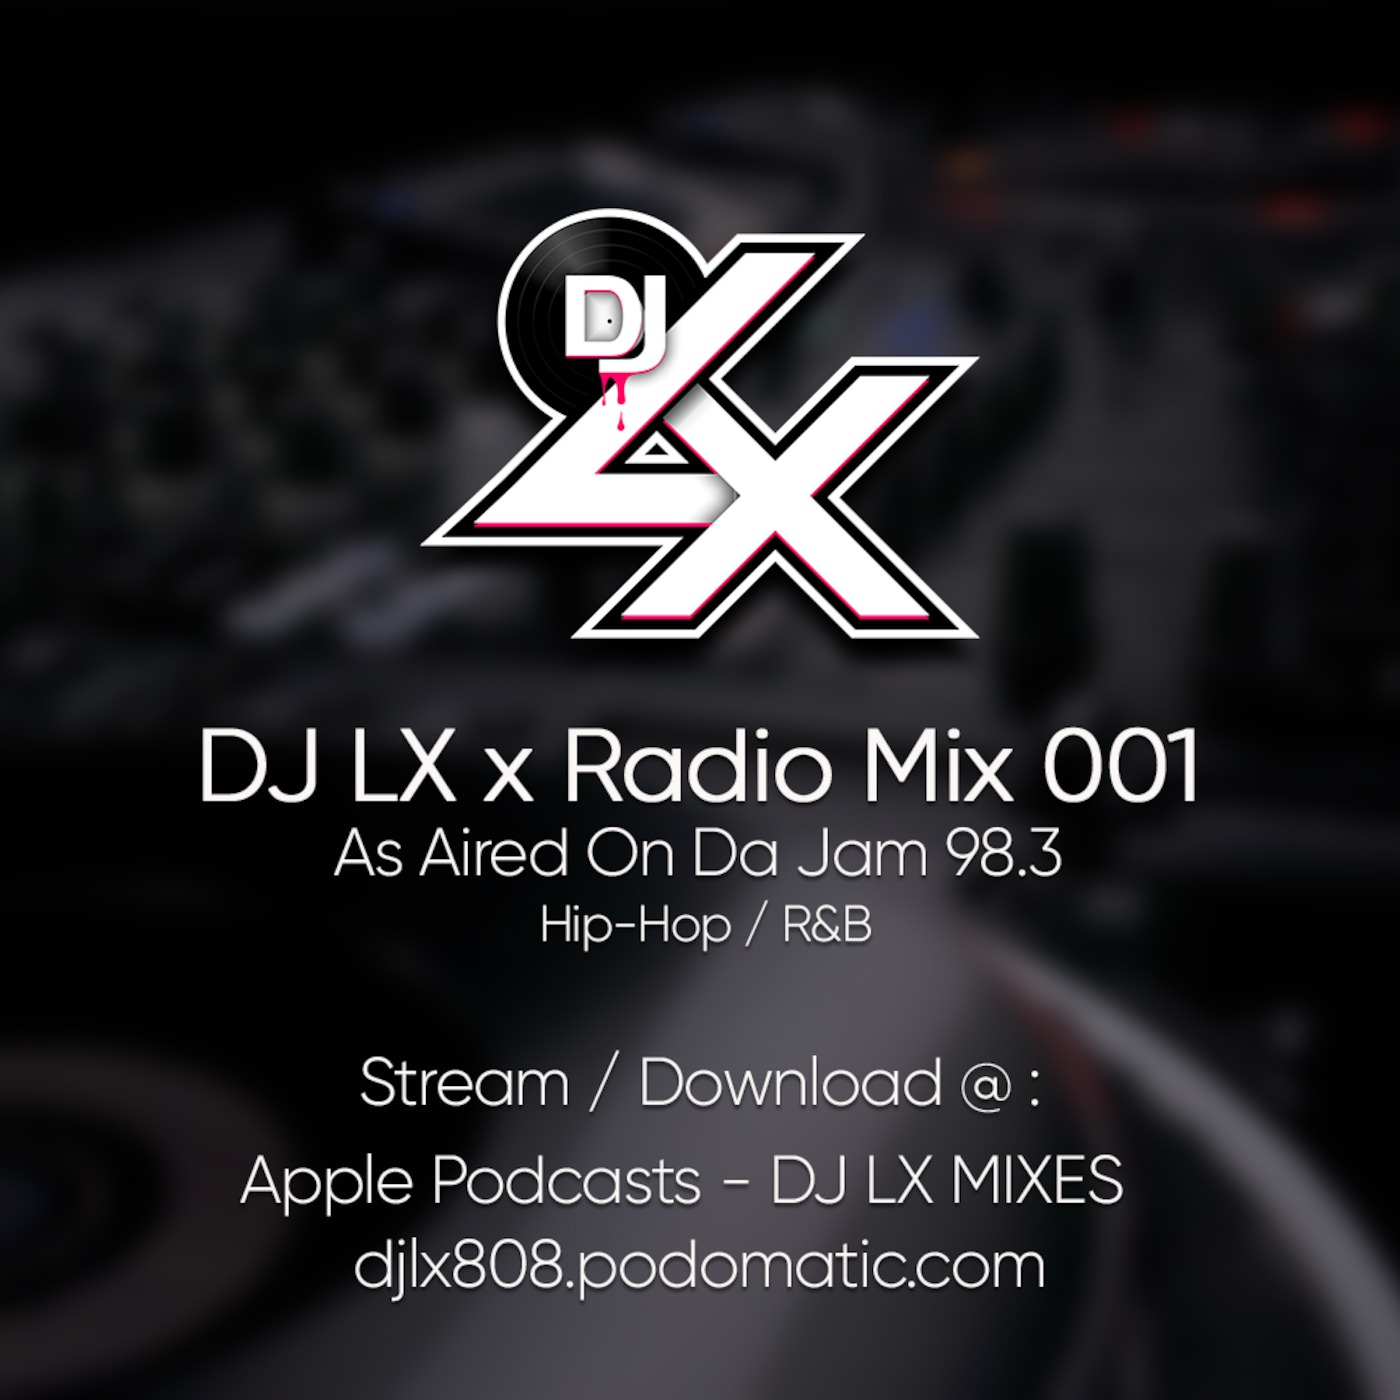 MIX: DJ LX X Radio 001 As Aired On Da Jam 98 3 DJ LX MIXES podcast